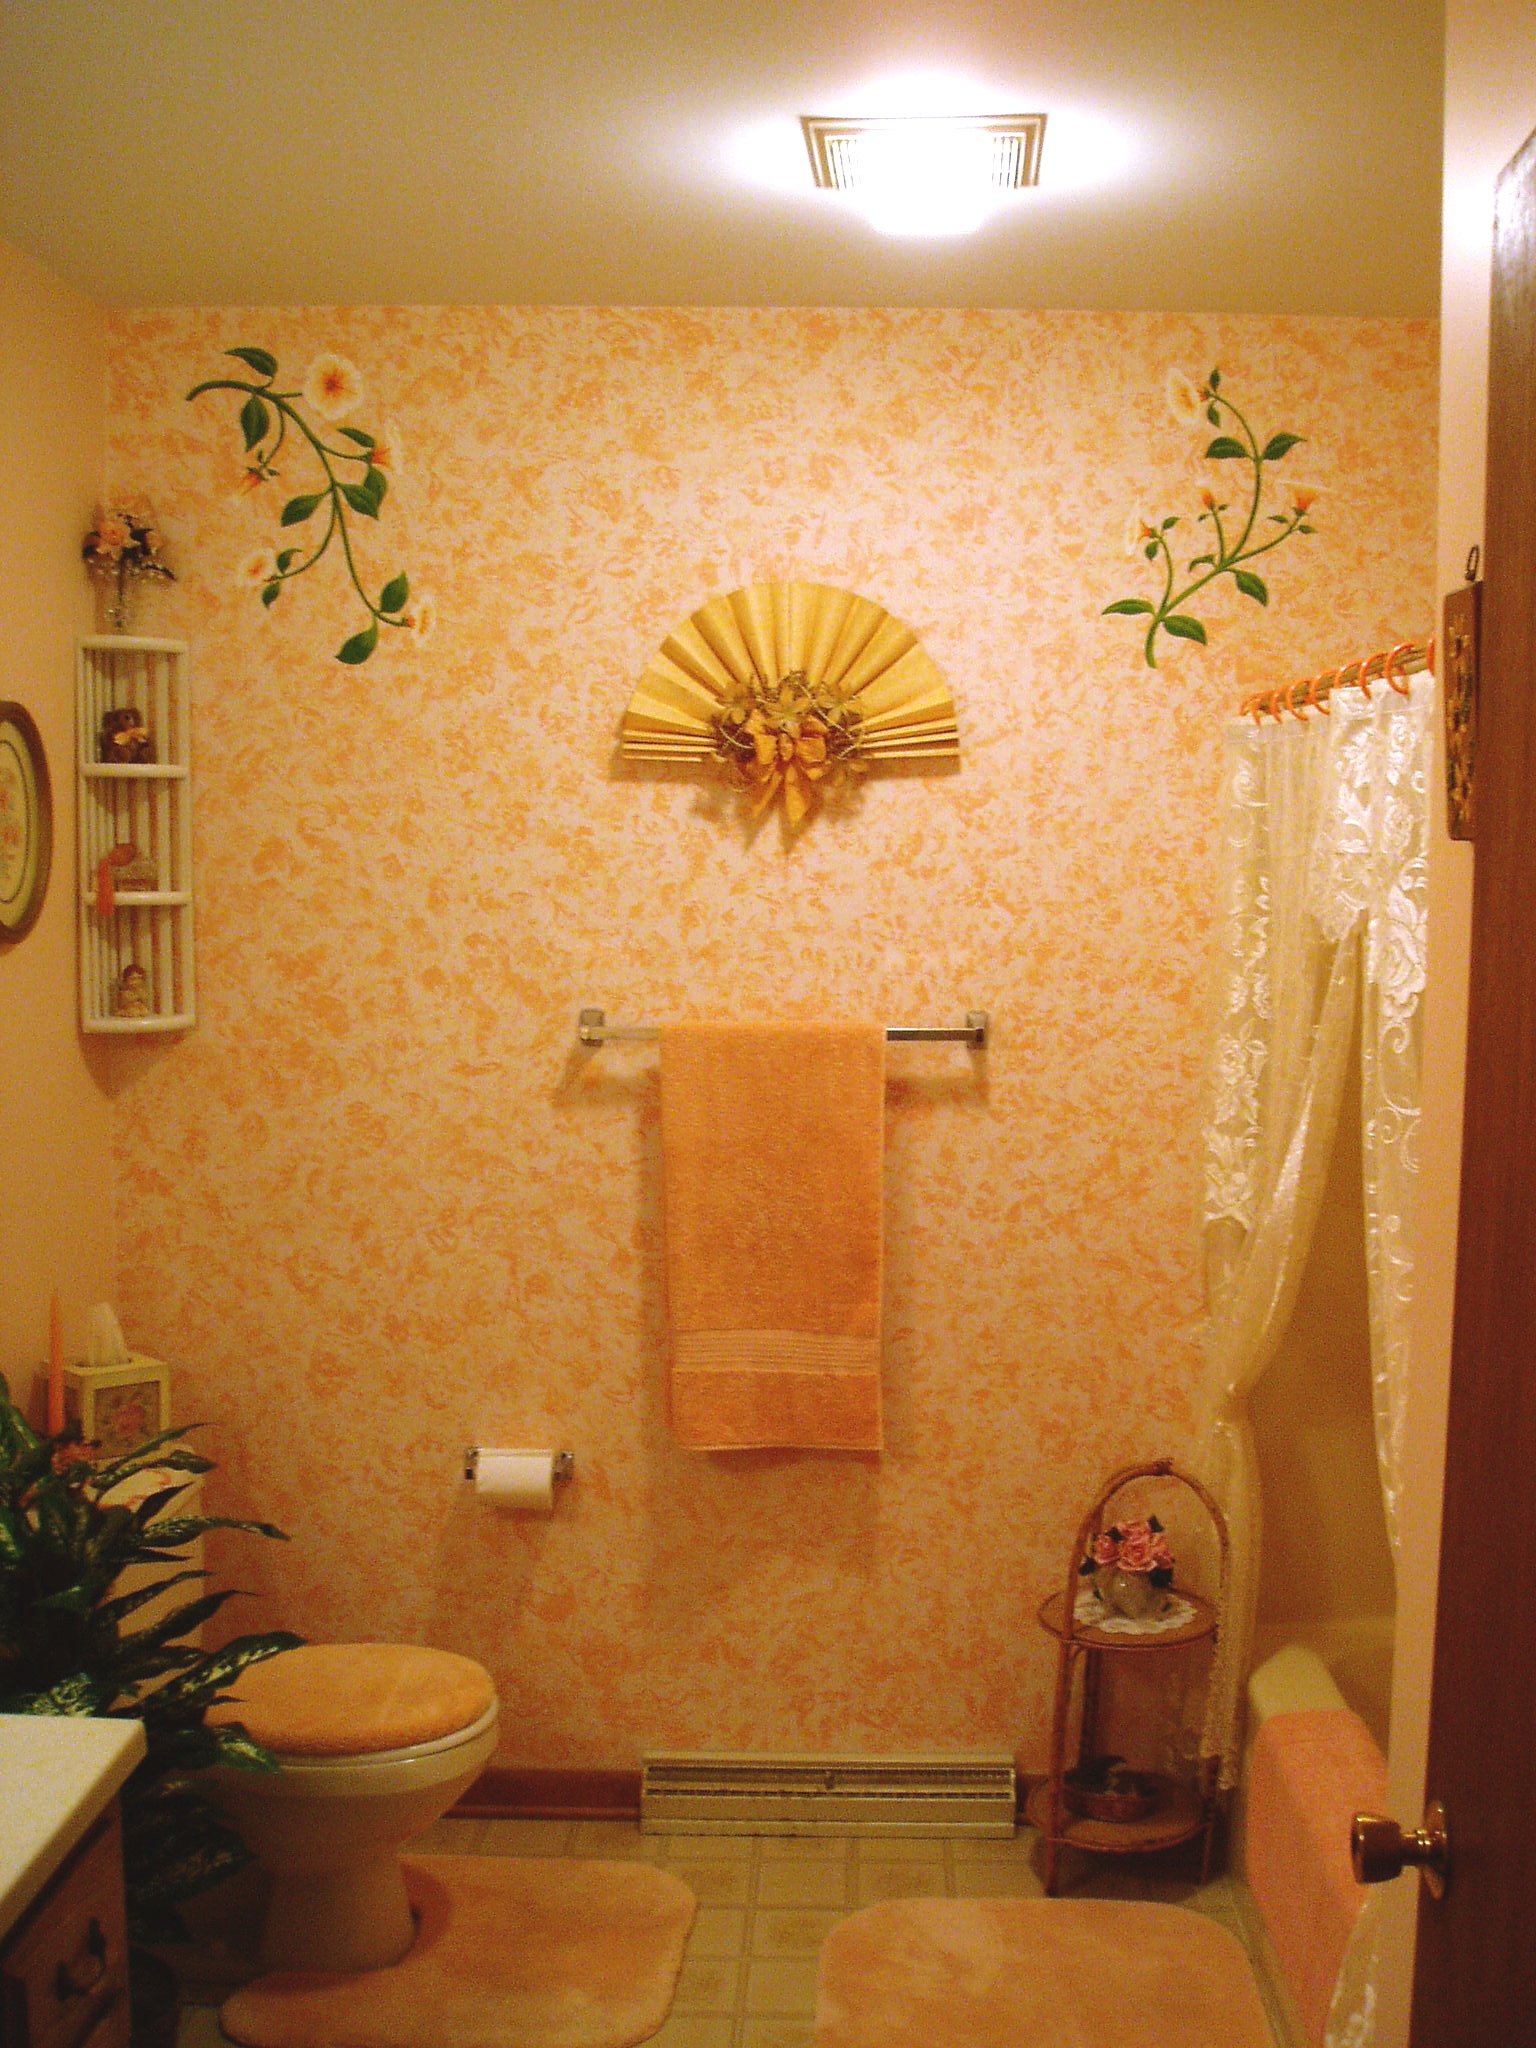 Peach floral bathroom Peach bathroom